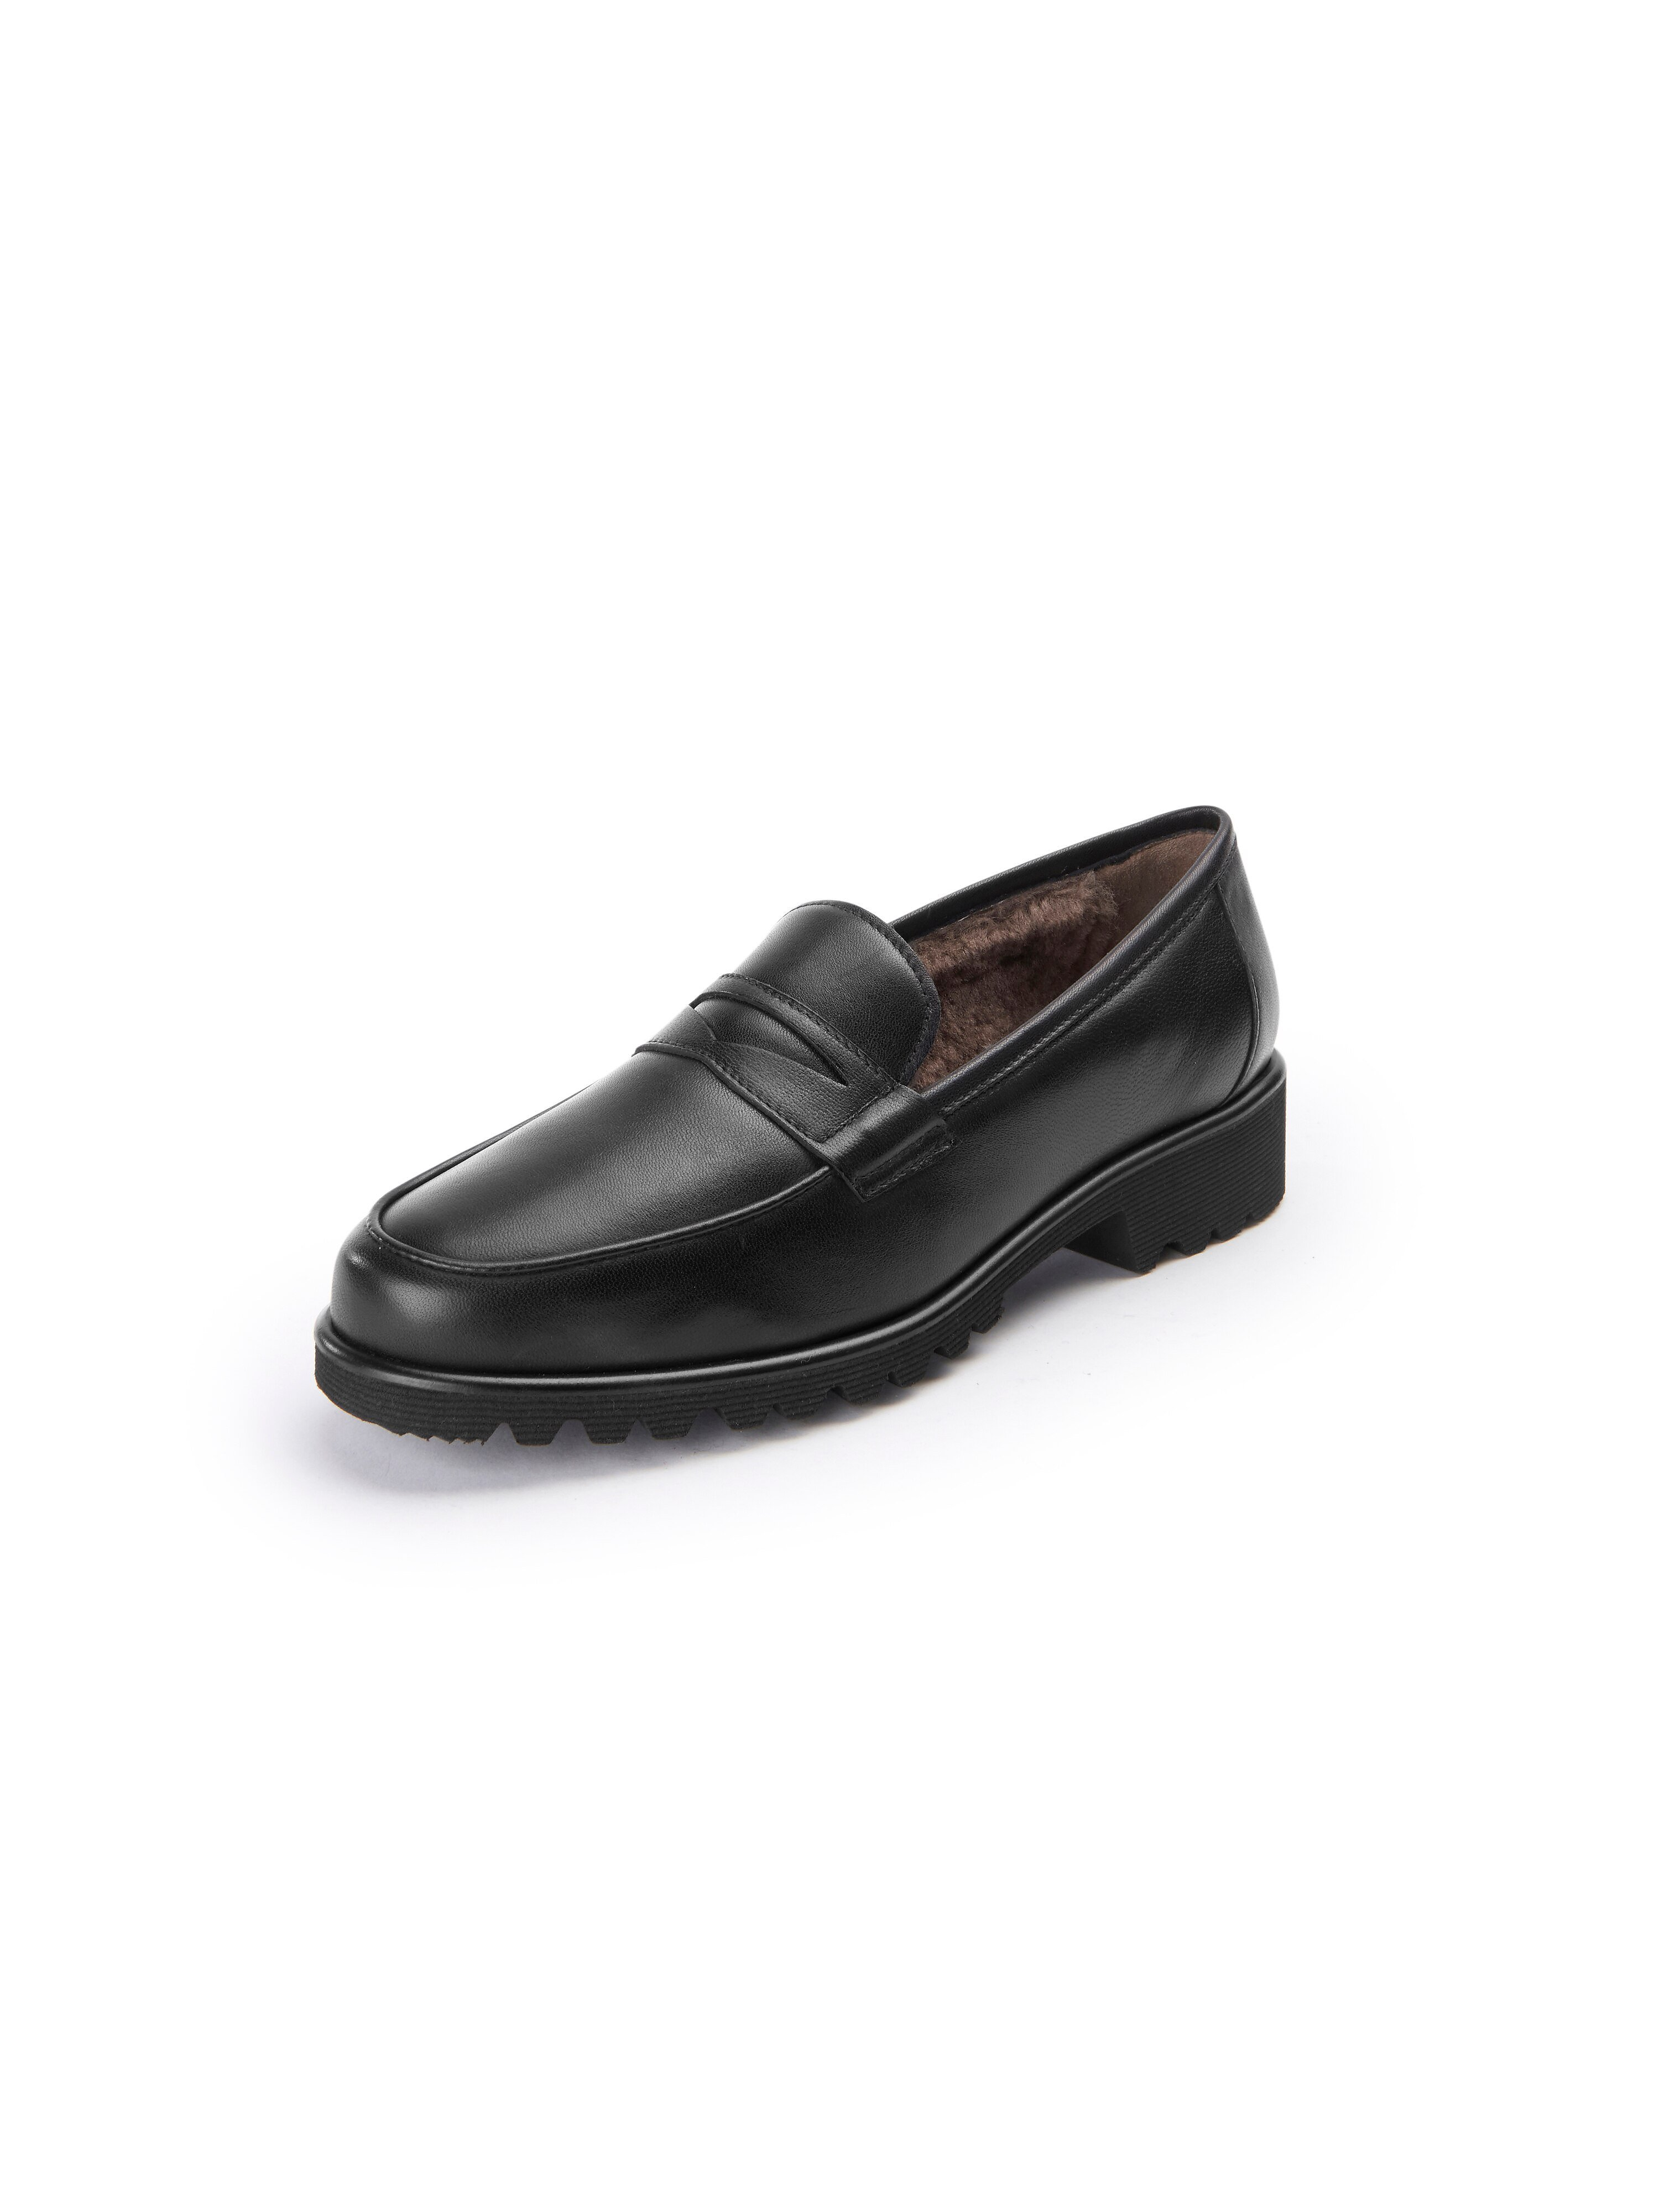 mocassins  Peter Hahn exquisit noir taille 41